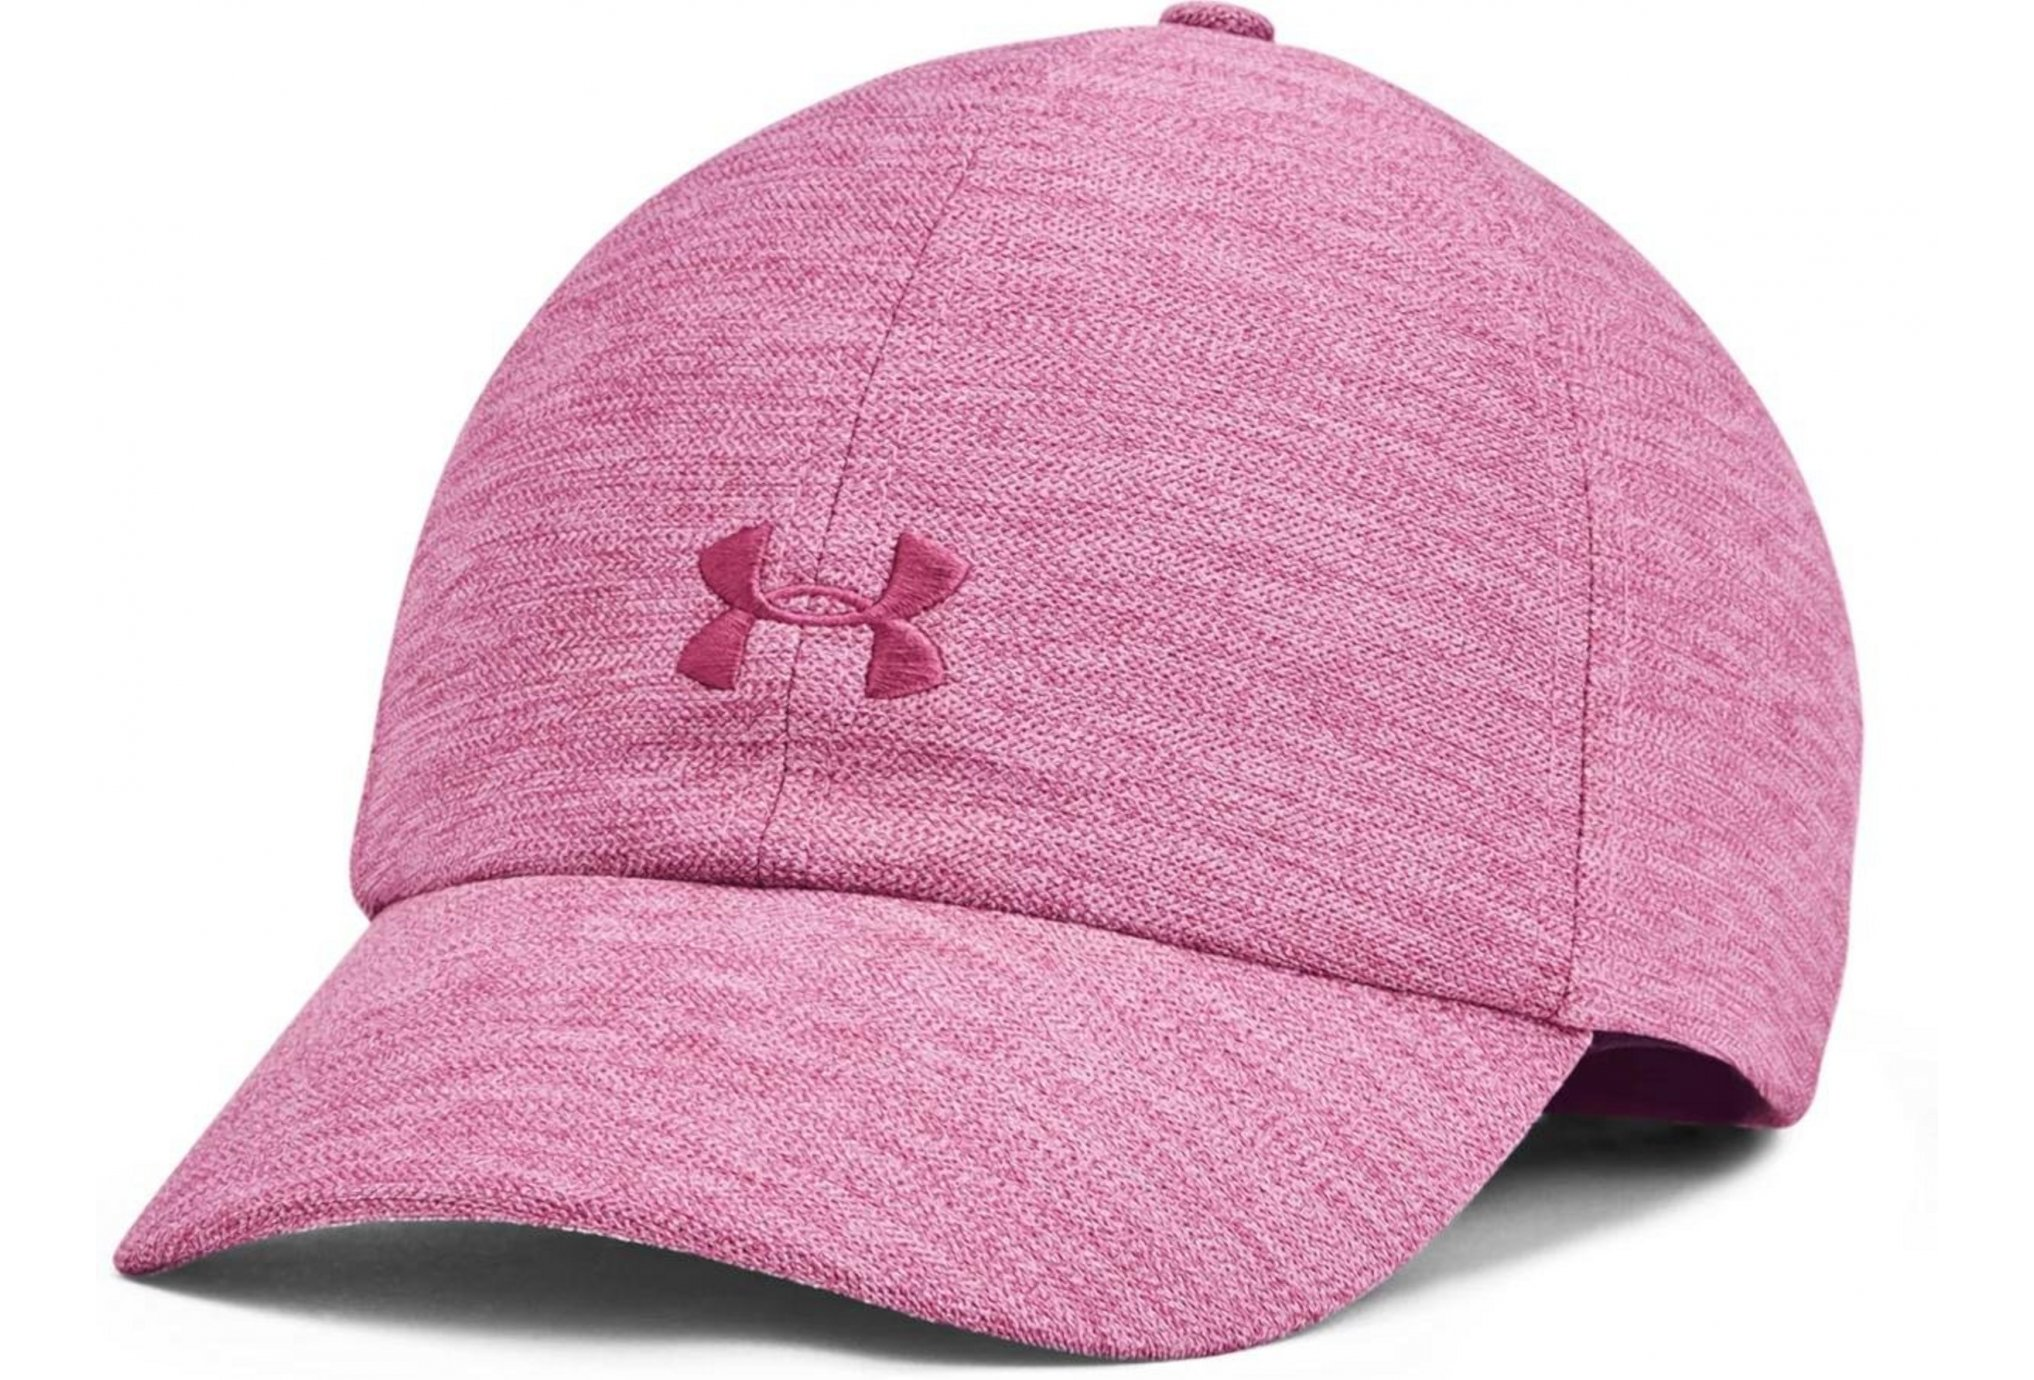 Under Armour Heathered Play Up Casquettes / bandeaux